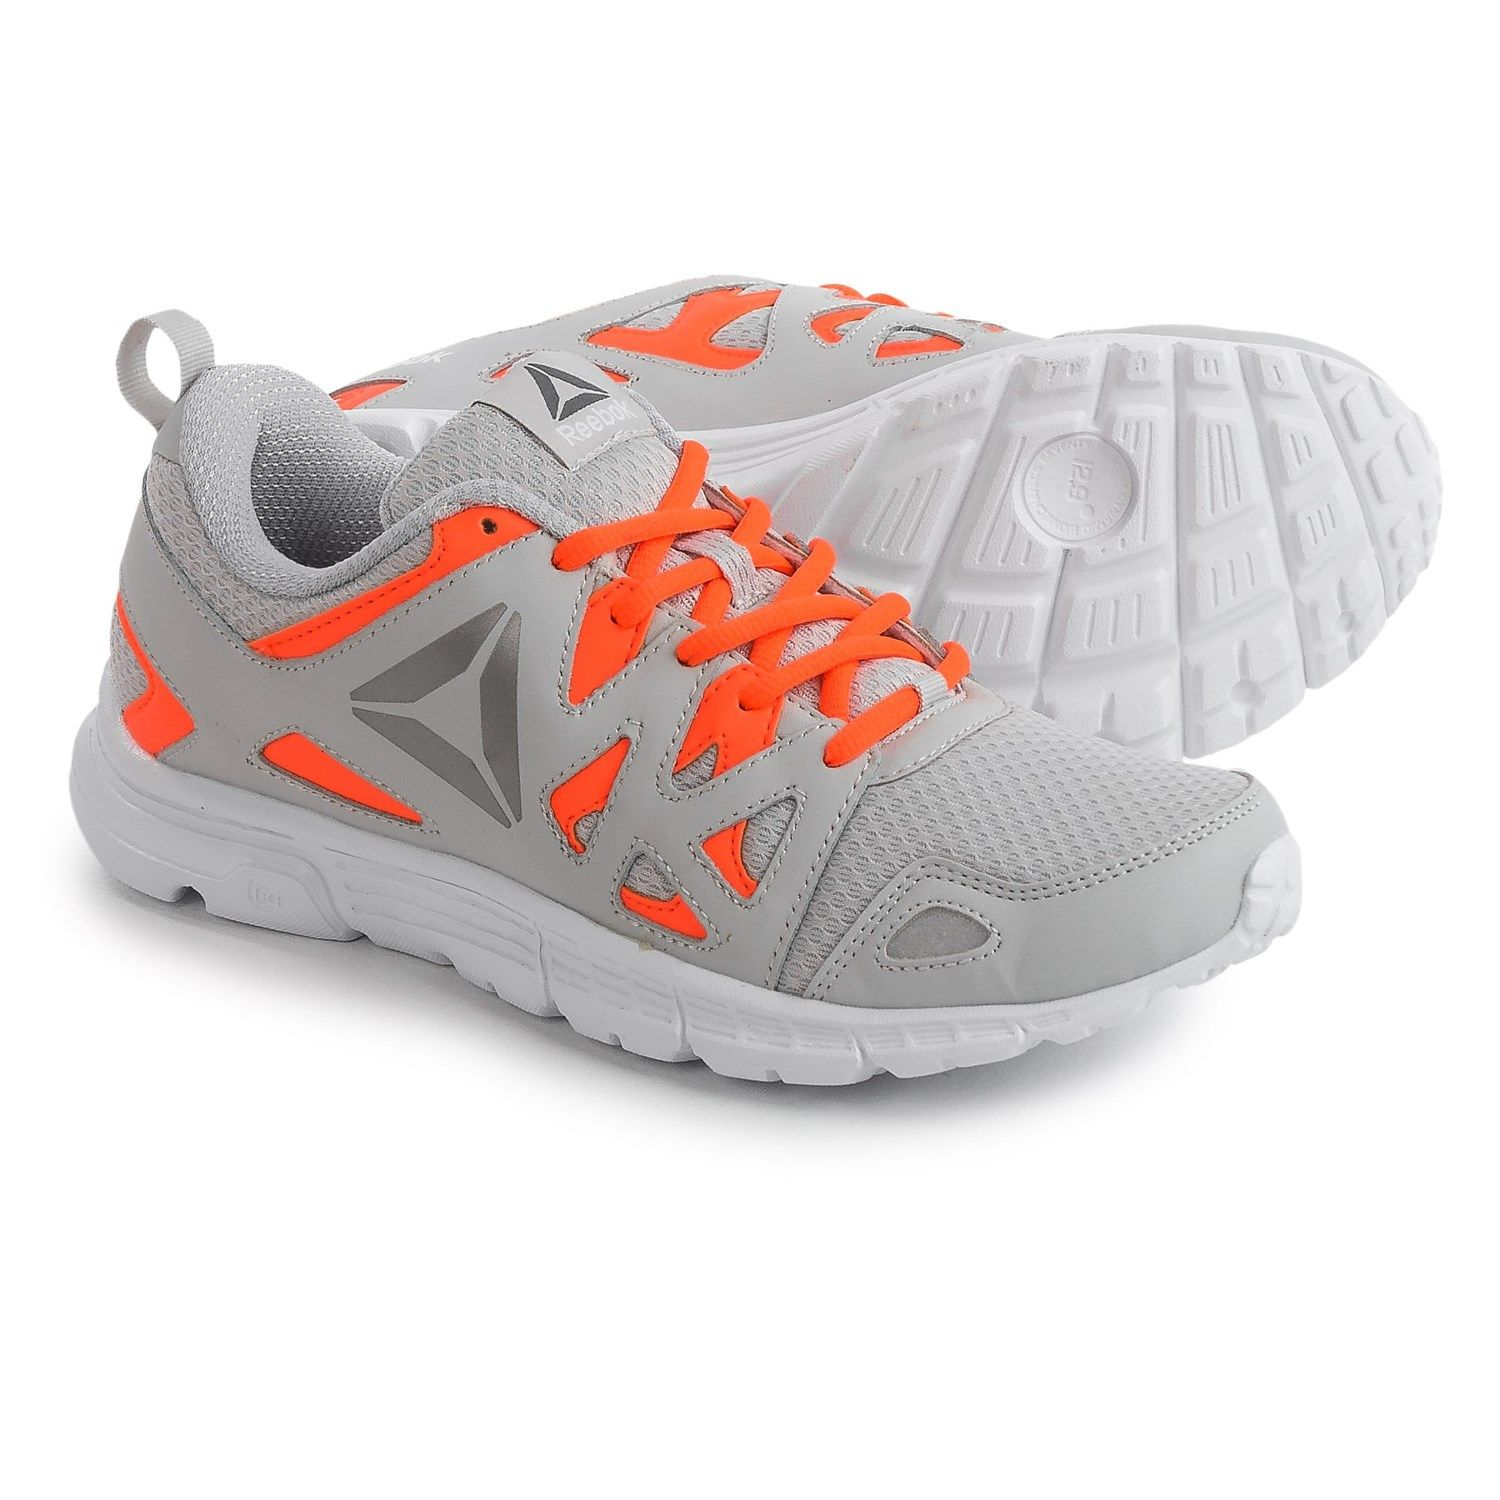 the latest 4eac0 1f1fd Reebok Run Supreme 3.0 MT Running Shoes (For Women) - Save 58%